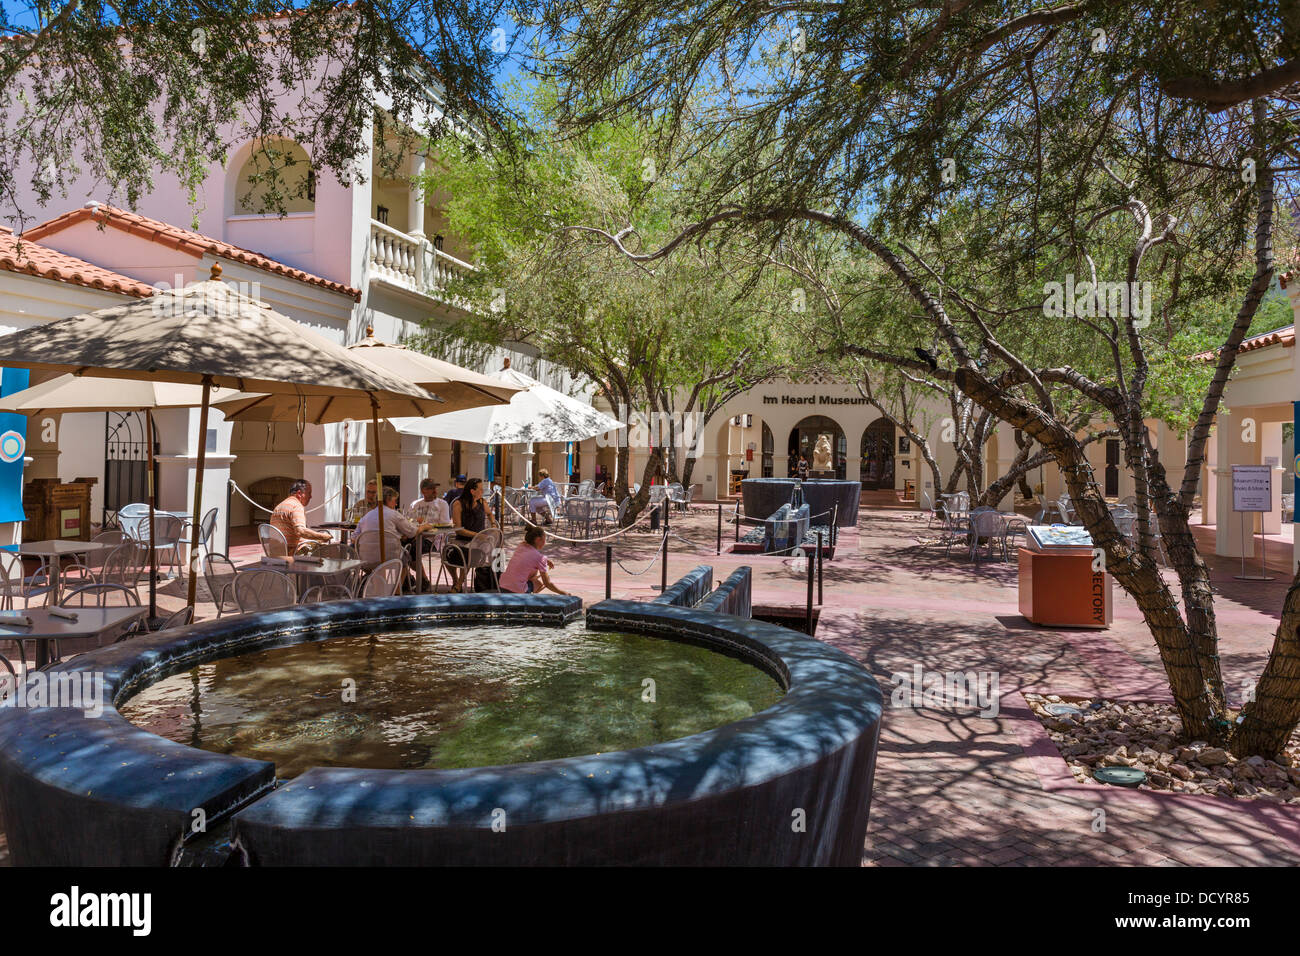 Cafe in the courtyard at The Heard Museum of Native Cultures and Art, Phoenix, Arizona, USA Stock Photo